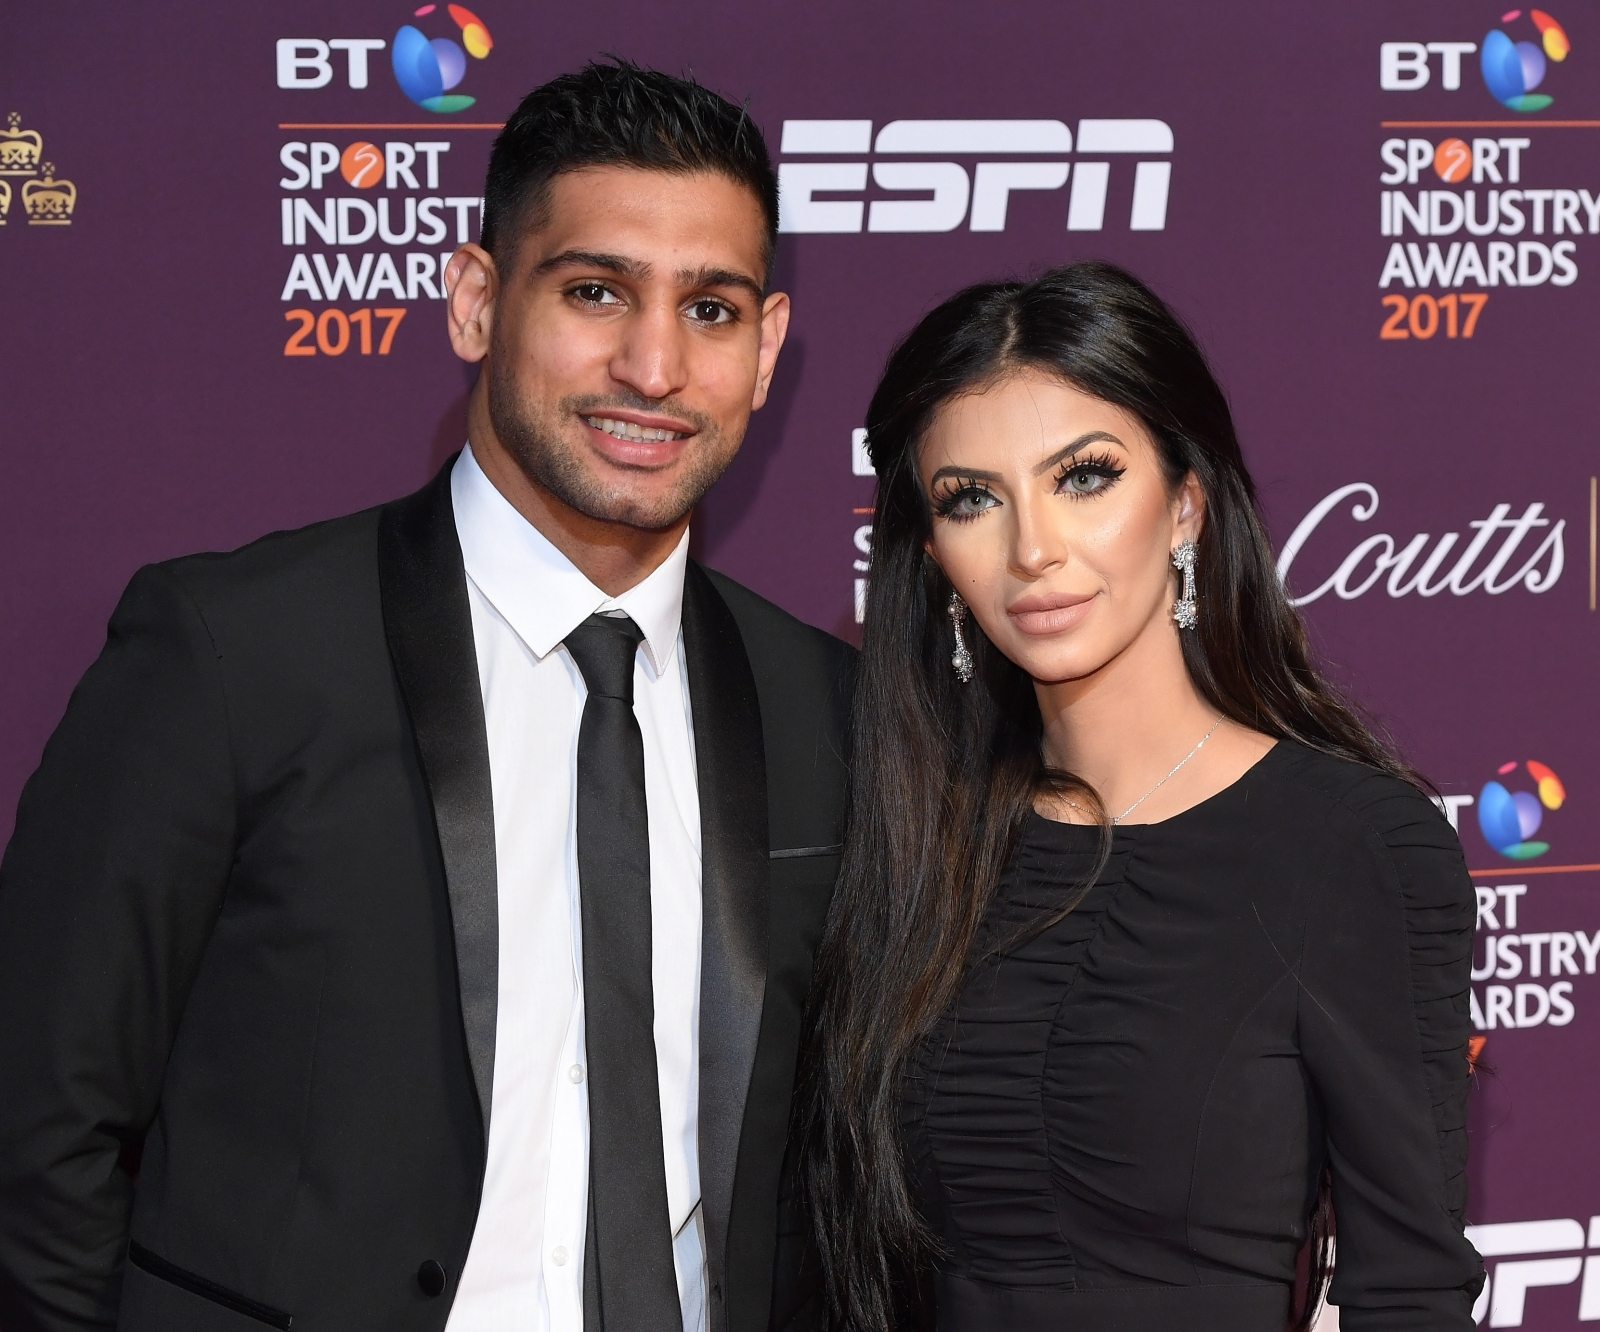 Amir Khan announces split from wife Faryal Makhdoom, claims she has moved on with Anthony Joshua